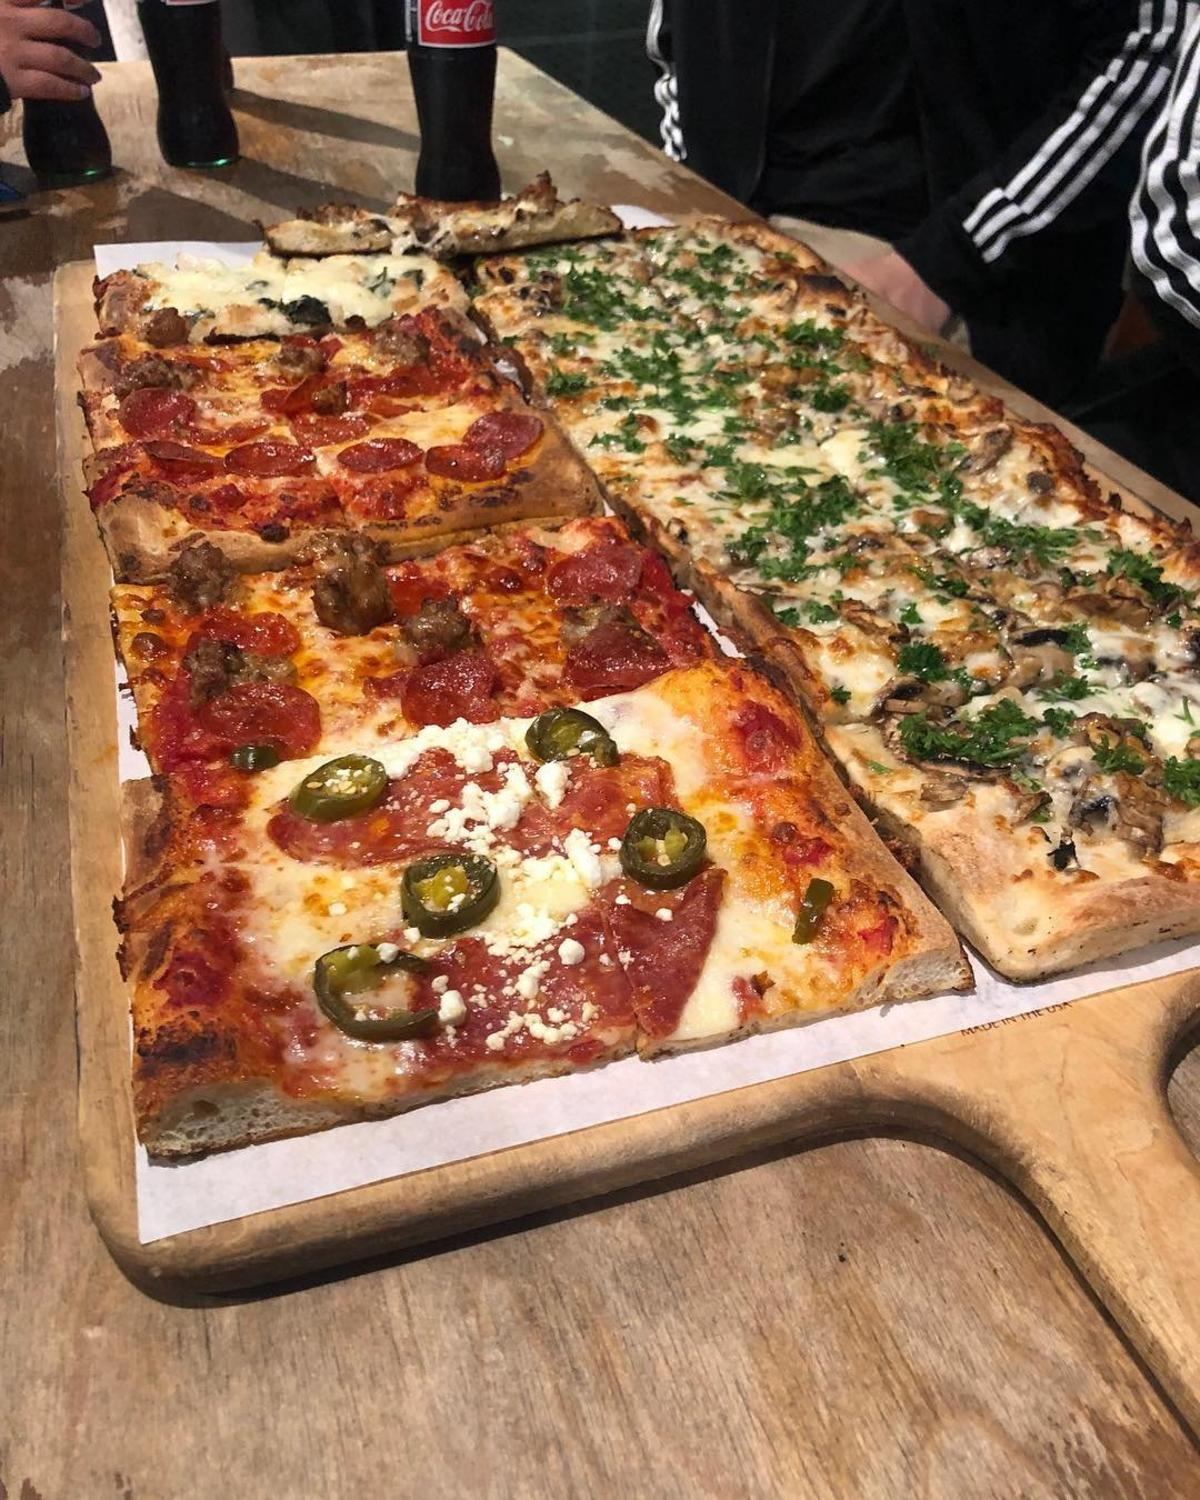 Zero Zero Pizzeria in Huntington Beach